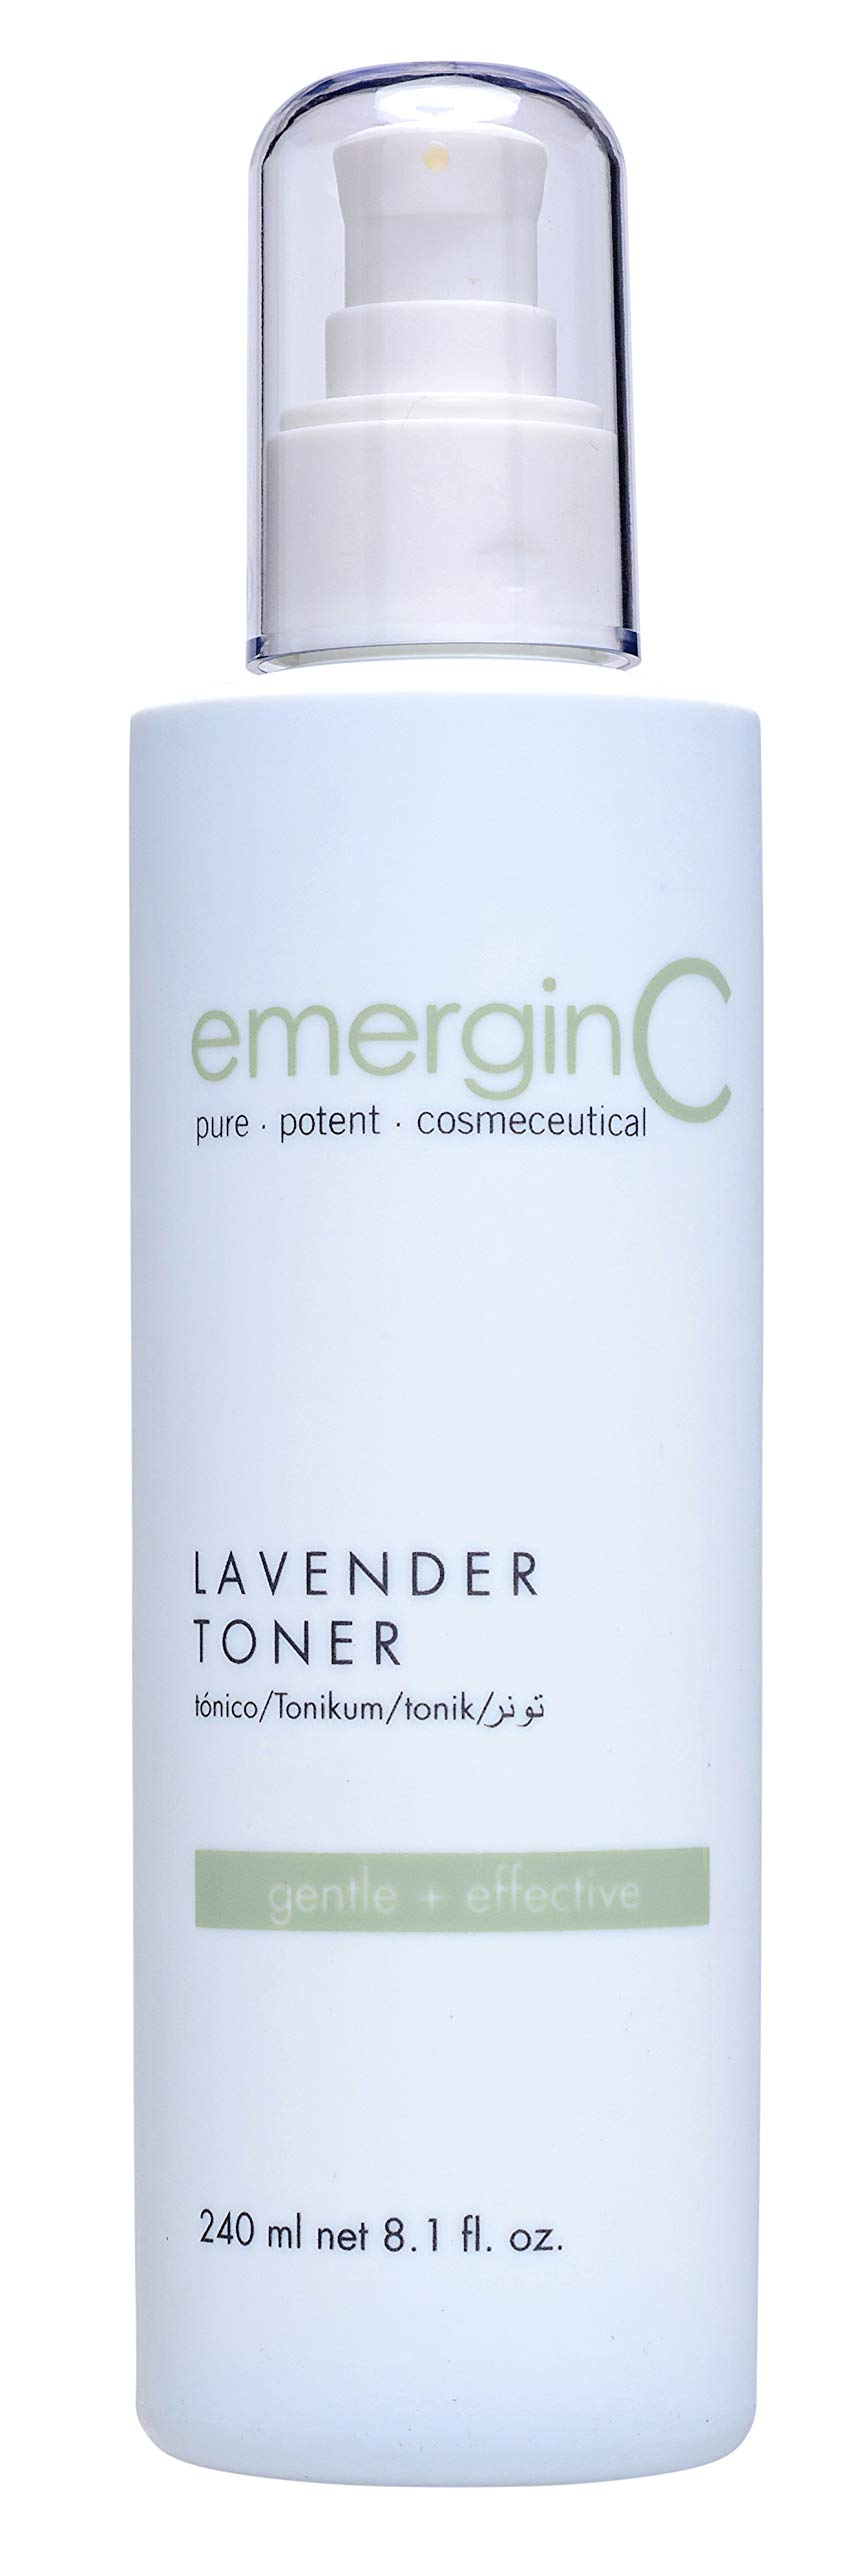 emerginC Soothing Lavender Toner - Gentle + Soothing Toner with Chamomile + Magnolia for Sensitive Skin + Minor Visible Redness (8.1 Ounces, 240 Milliliters)